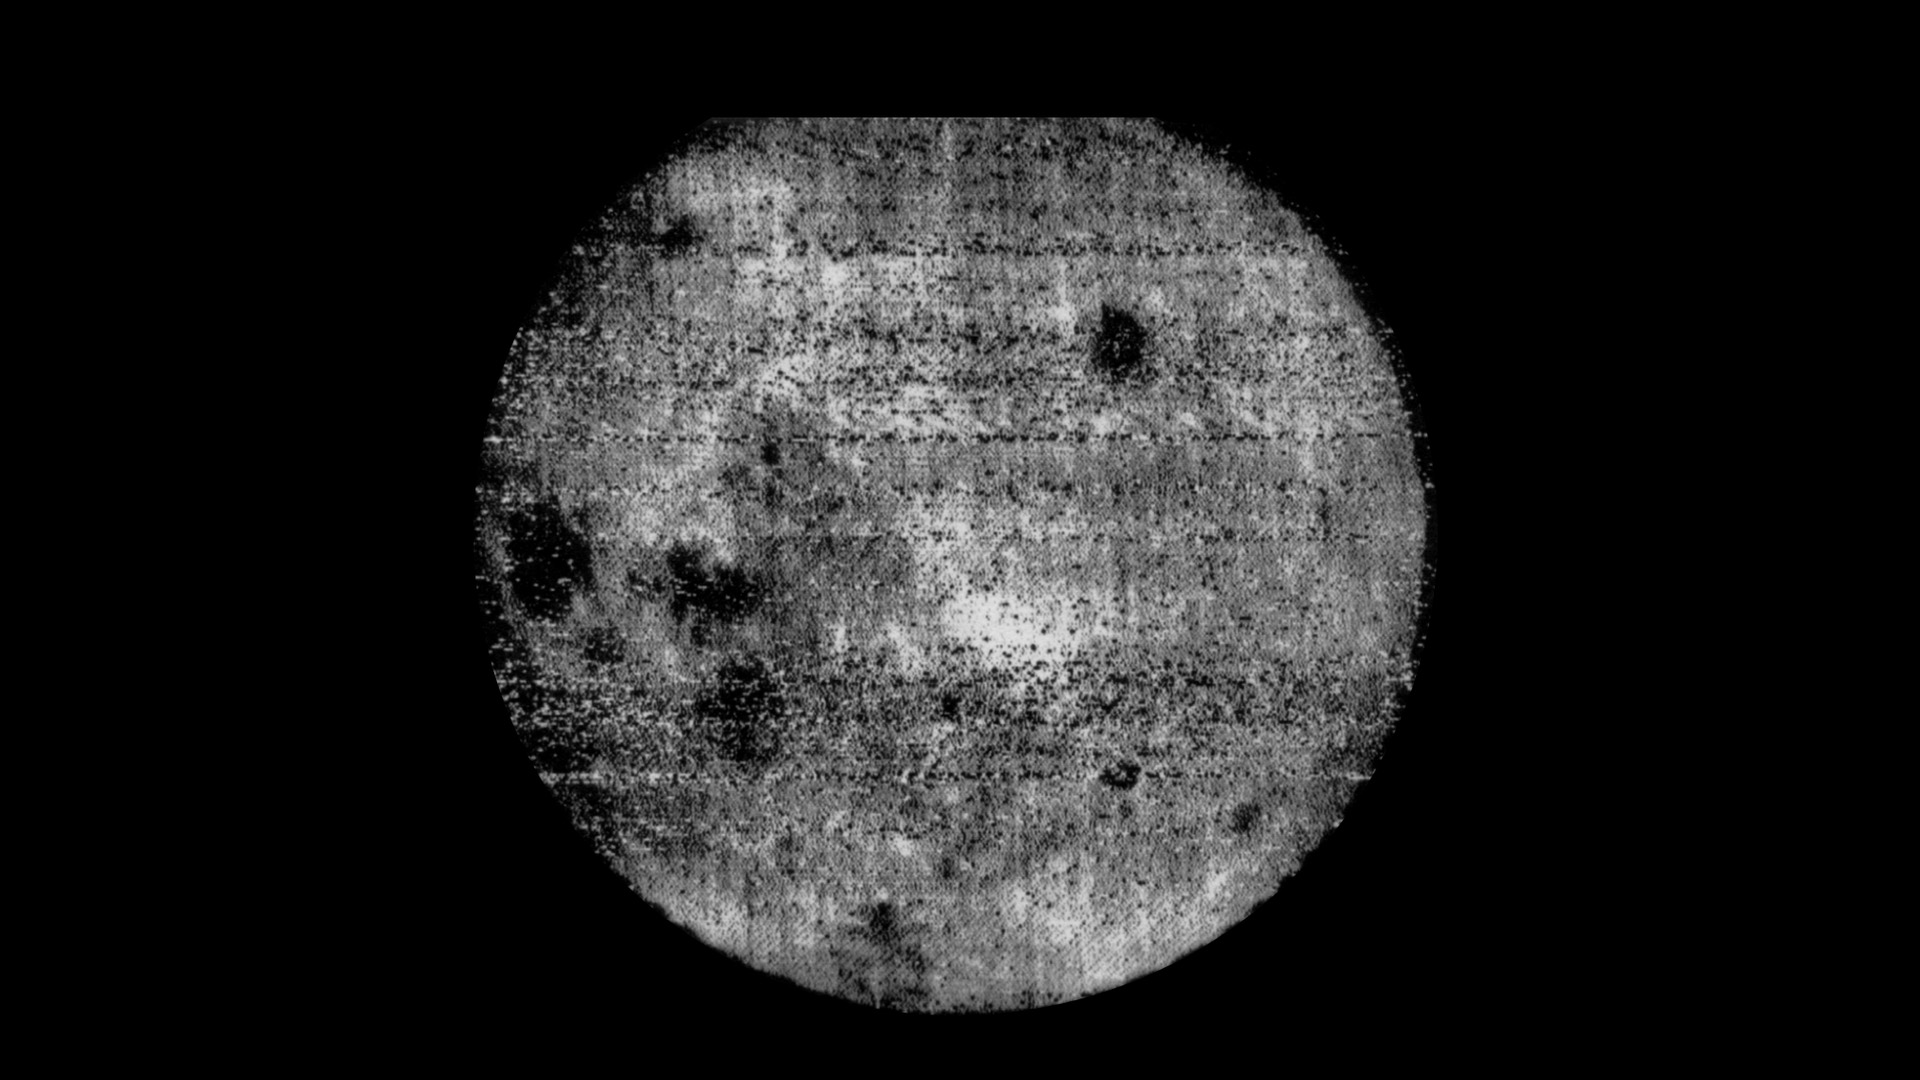 Fuzzy black and white image of the Moon.